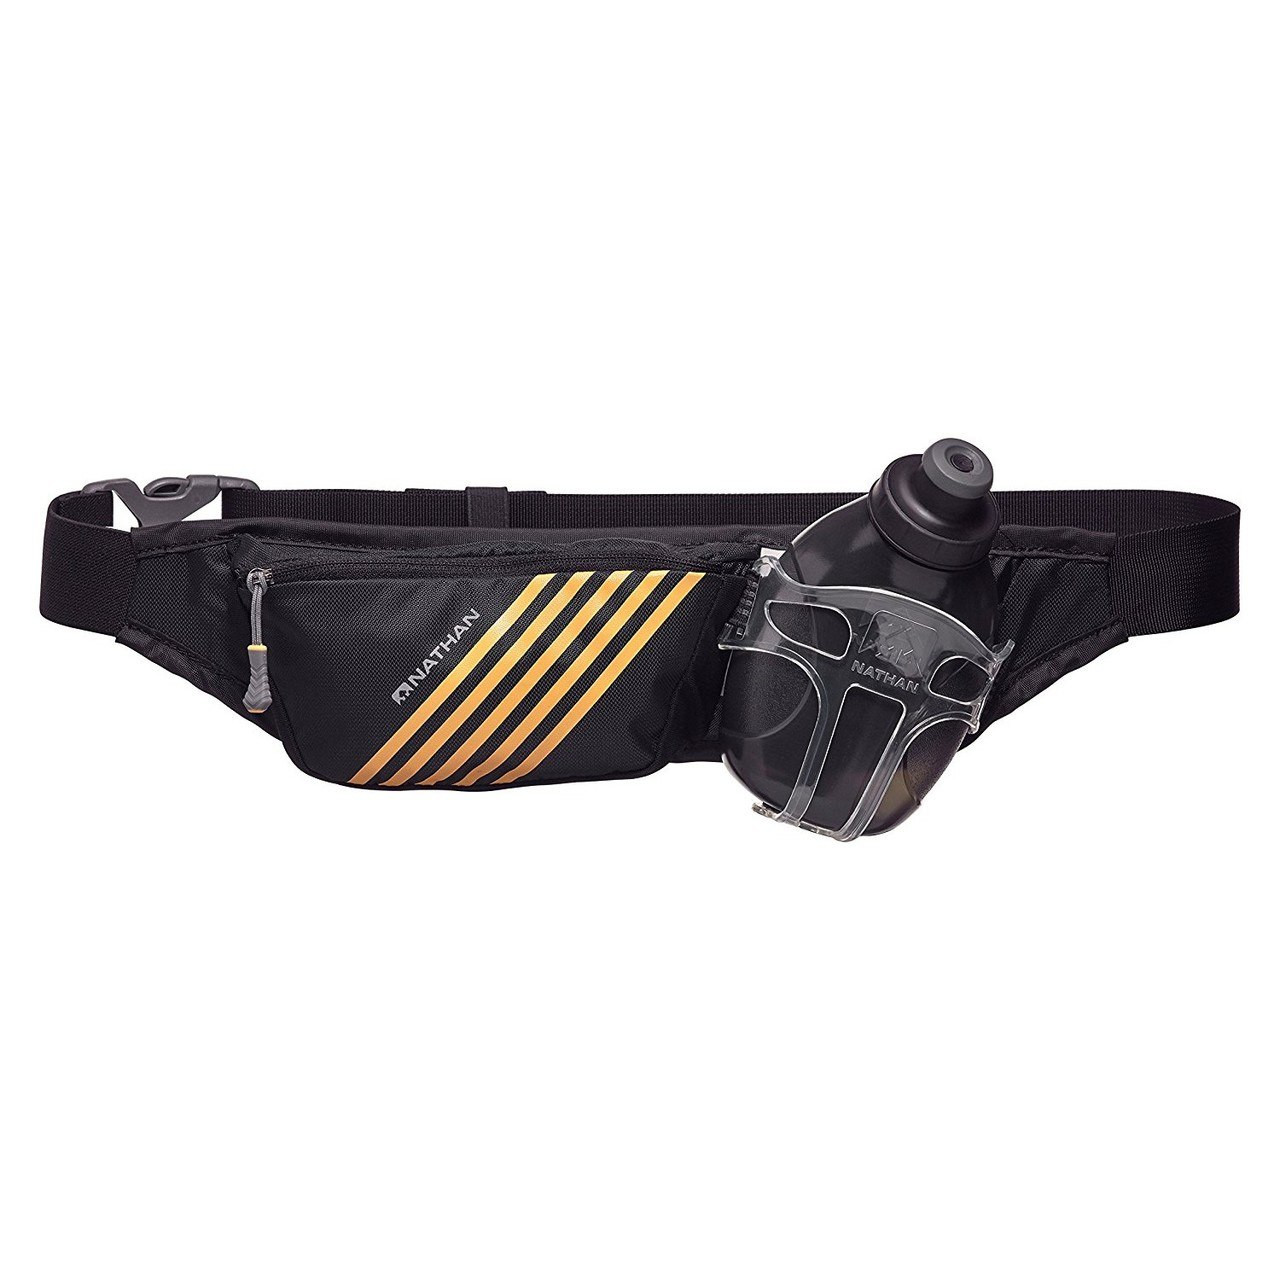 Nathan Swift Plus 10 oz. Hydration Belt - 2019 price